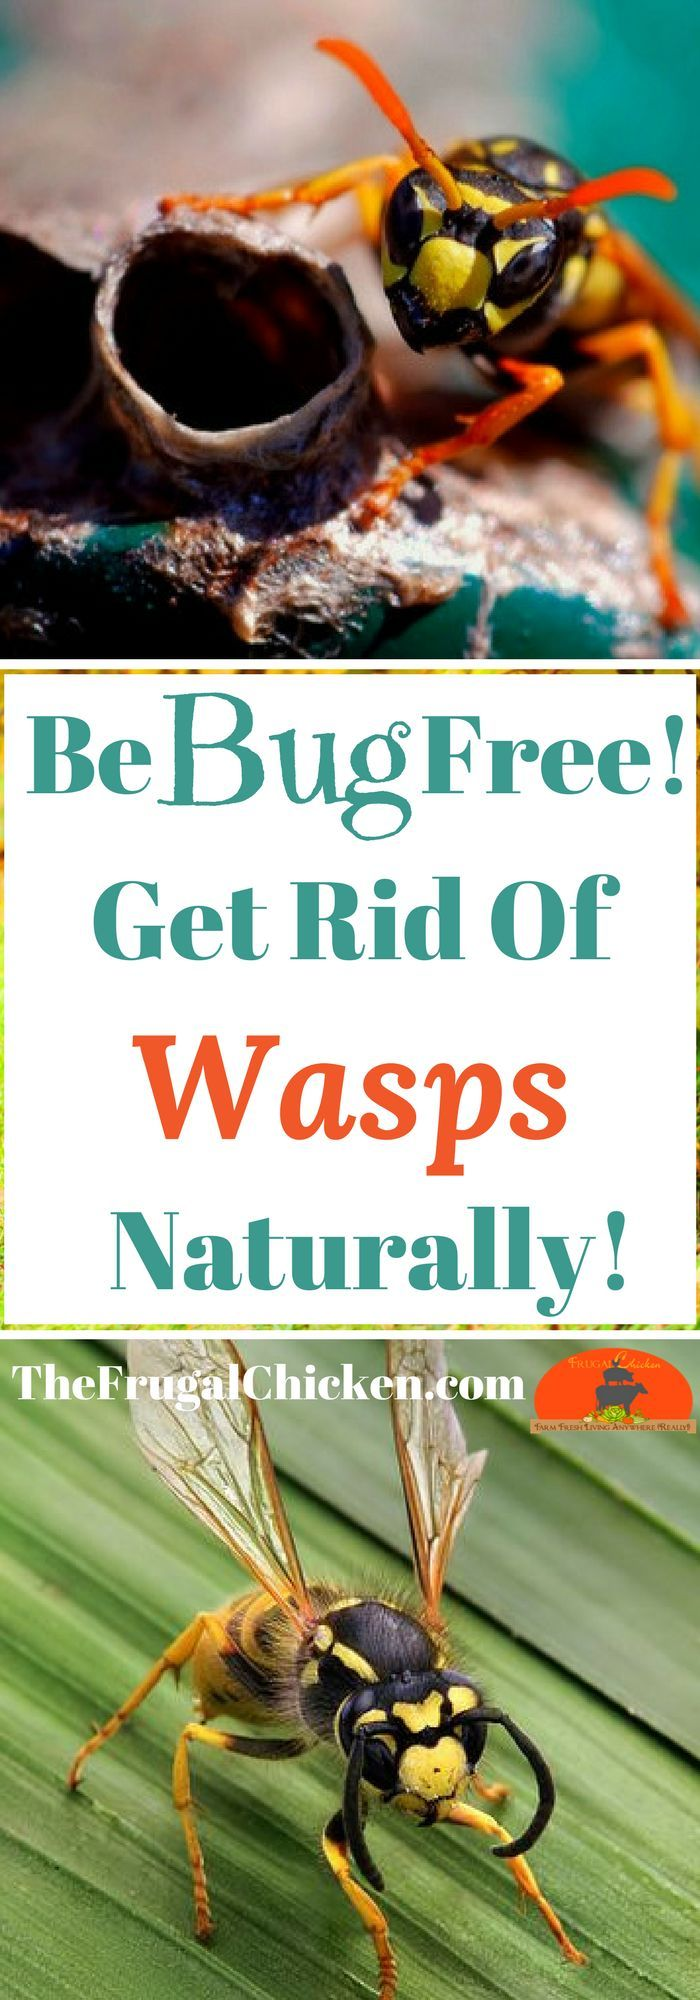 Wasps are annoying...but you don't want to expose your kids and dogs to dangerous chemicals, right? Here's how to get rid of wasps naturally, using all organic methods.